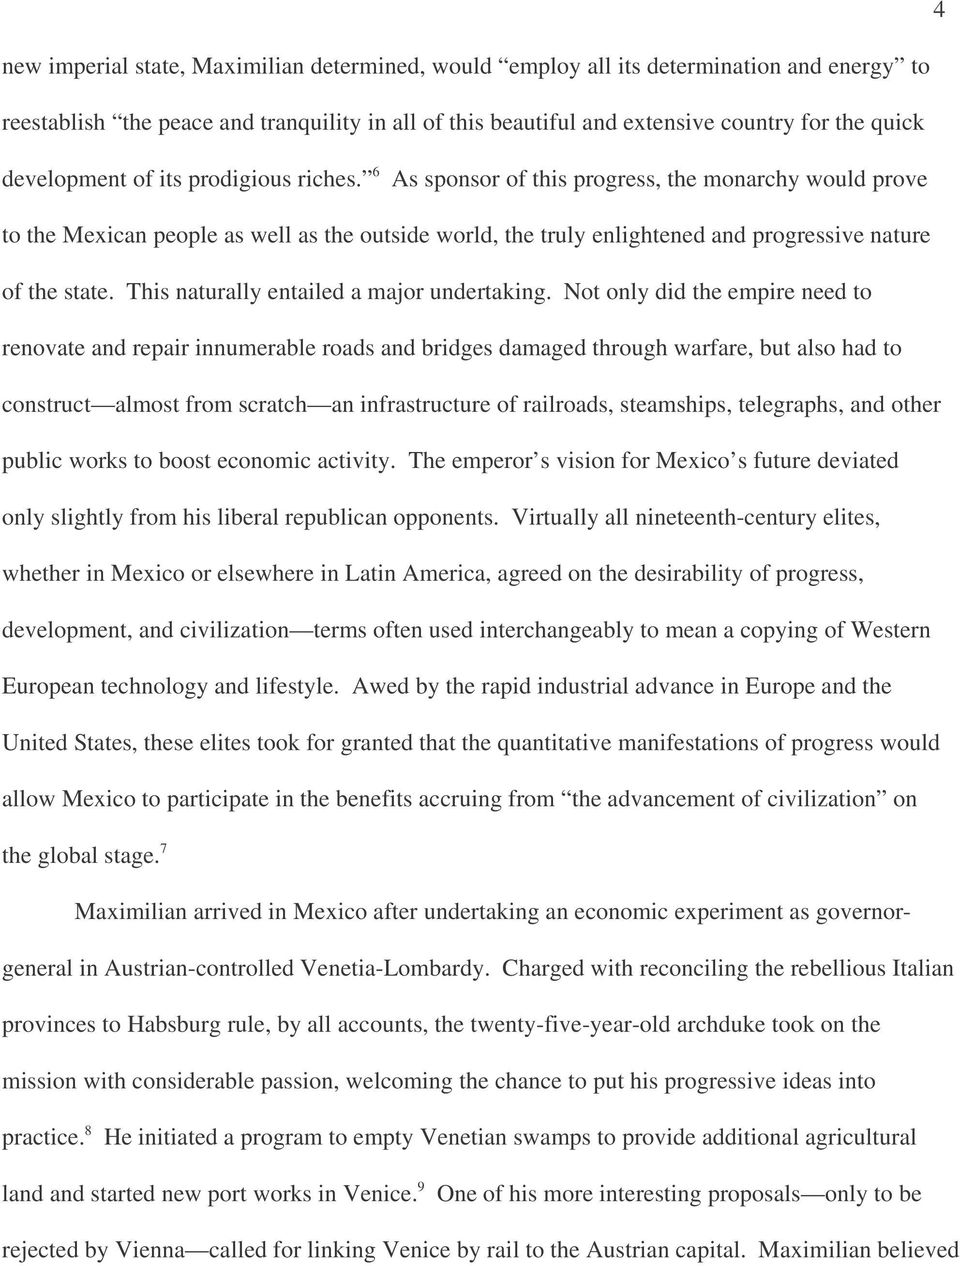 6 As sponsor of this progress, the monarchy would prove to the Mexican people as well as the outside world, the truly enlightened and progressive nature of the state.